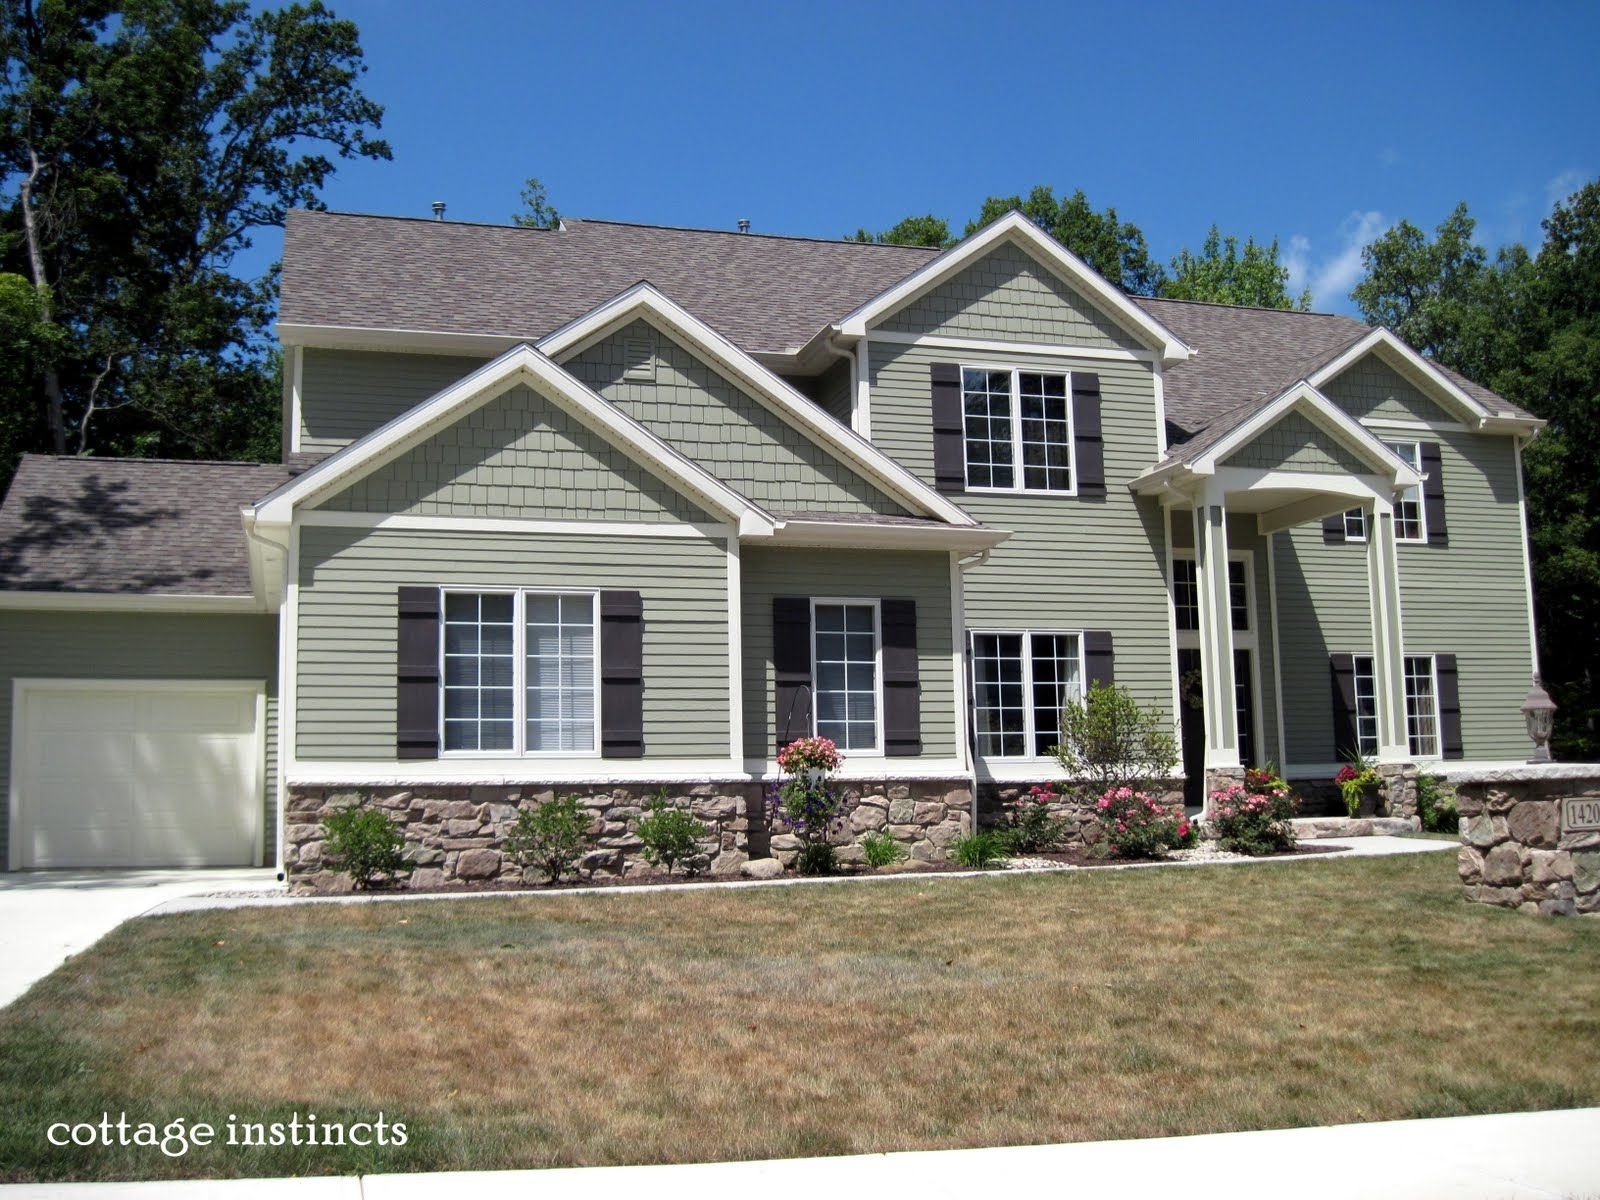 Popular trim colors for white houses - 5 Of The Most Popular Home Siding Colors